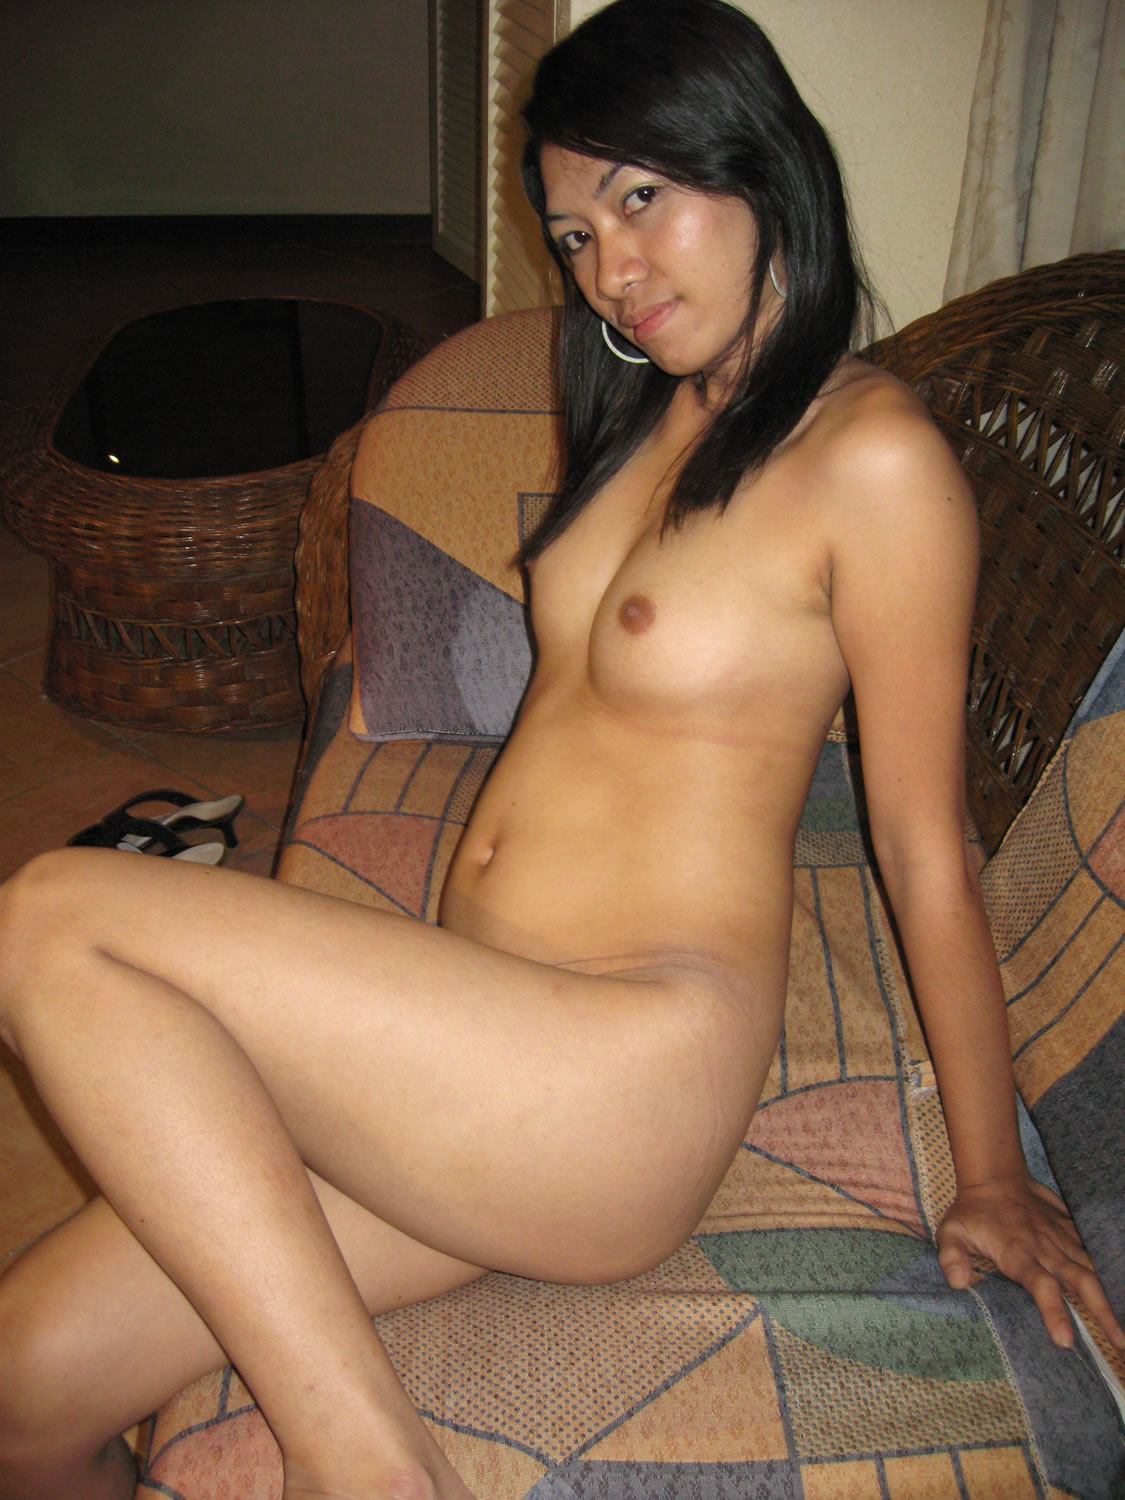 Anie Filipino Porn trike patrol che with trailer pinay amateur gagging on two